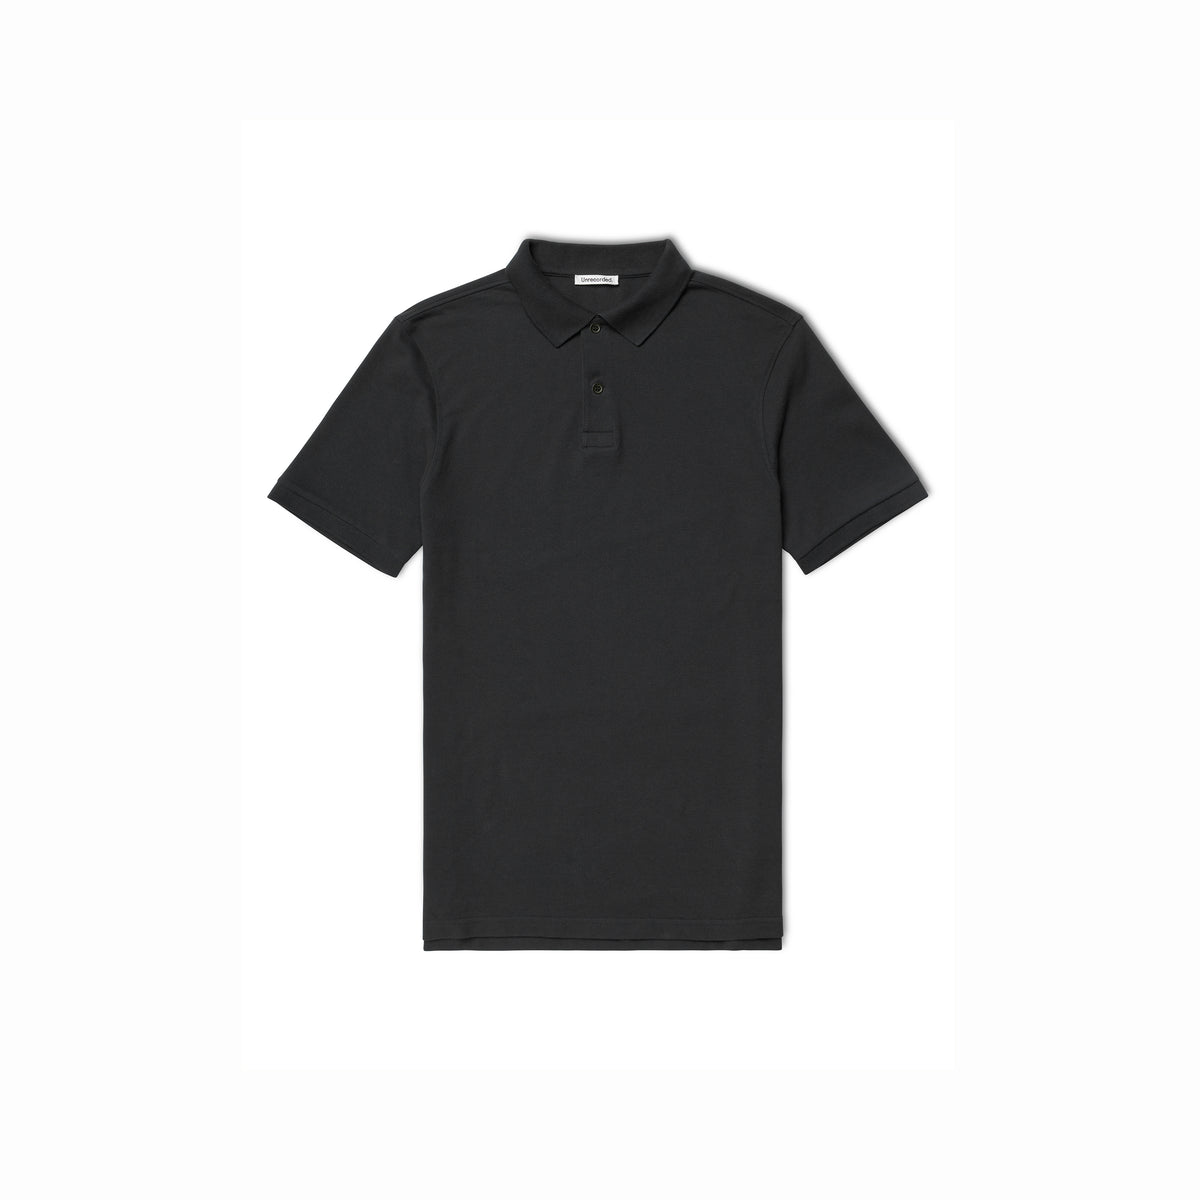 Pique Polo in Black made from organic cotton - Alternate